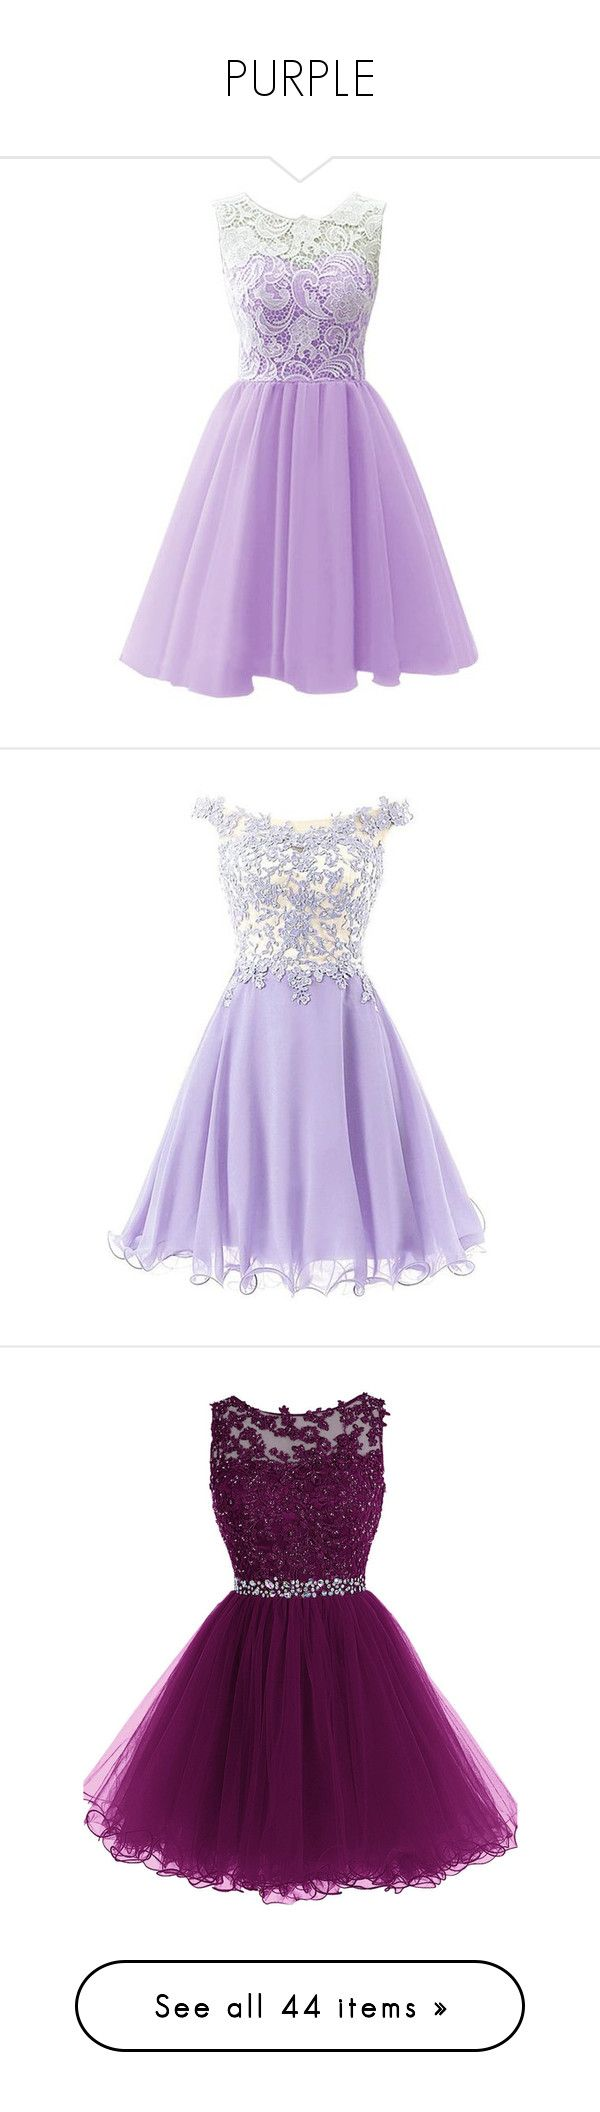 """PURPLE"" by rngriffis02 ❤ liked on Polyvore featuring dresses, gowns, purple, robes, purple lace dress, bridesmaid dresses, lace prom dresses, purple evening gowns, purple prom dresses and vestidos curto"